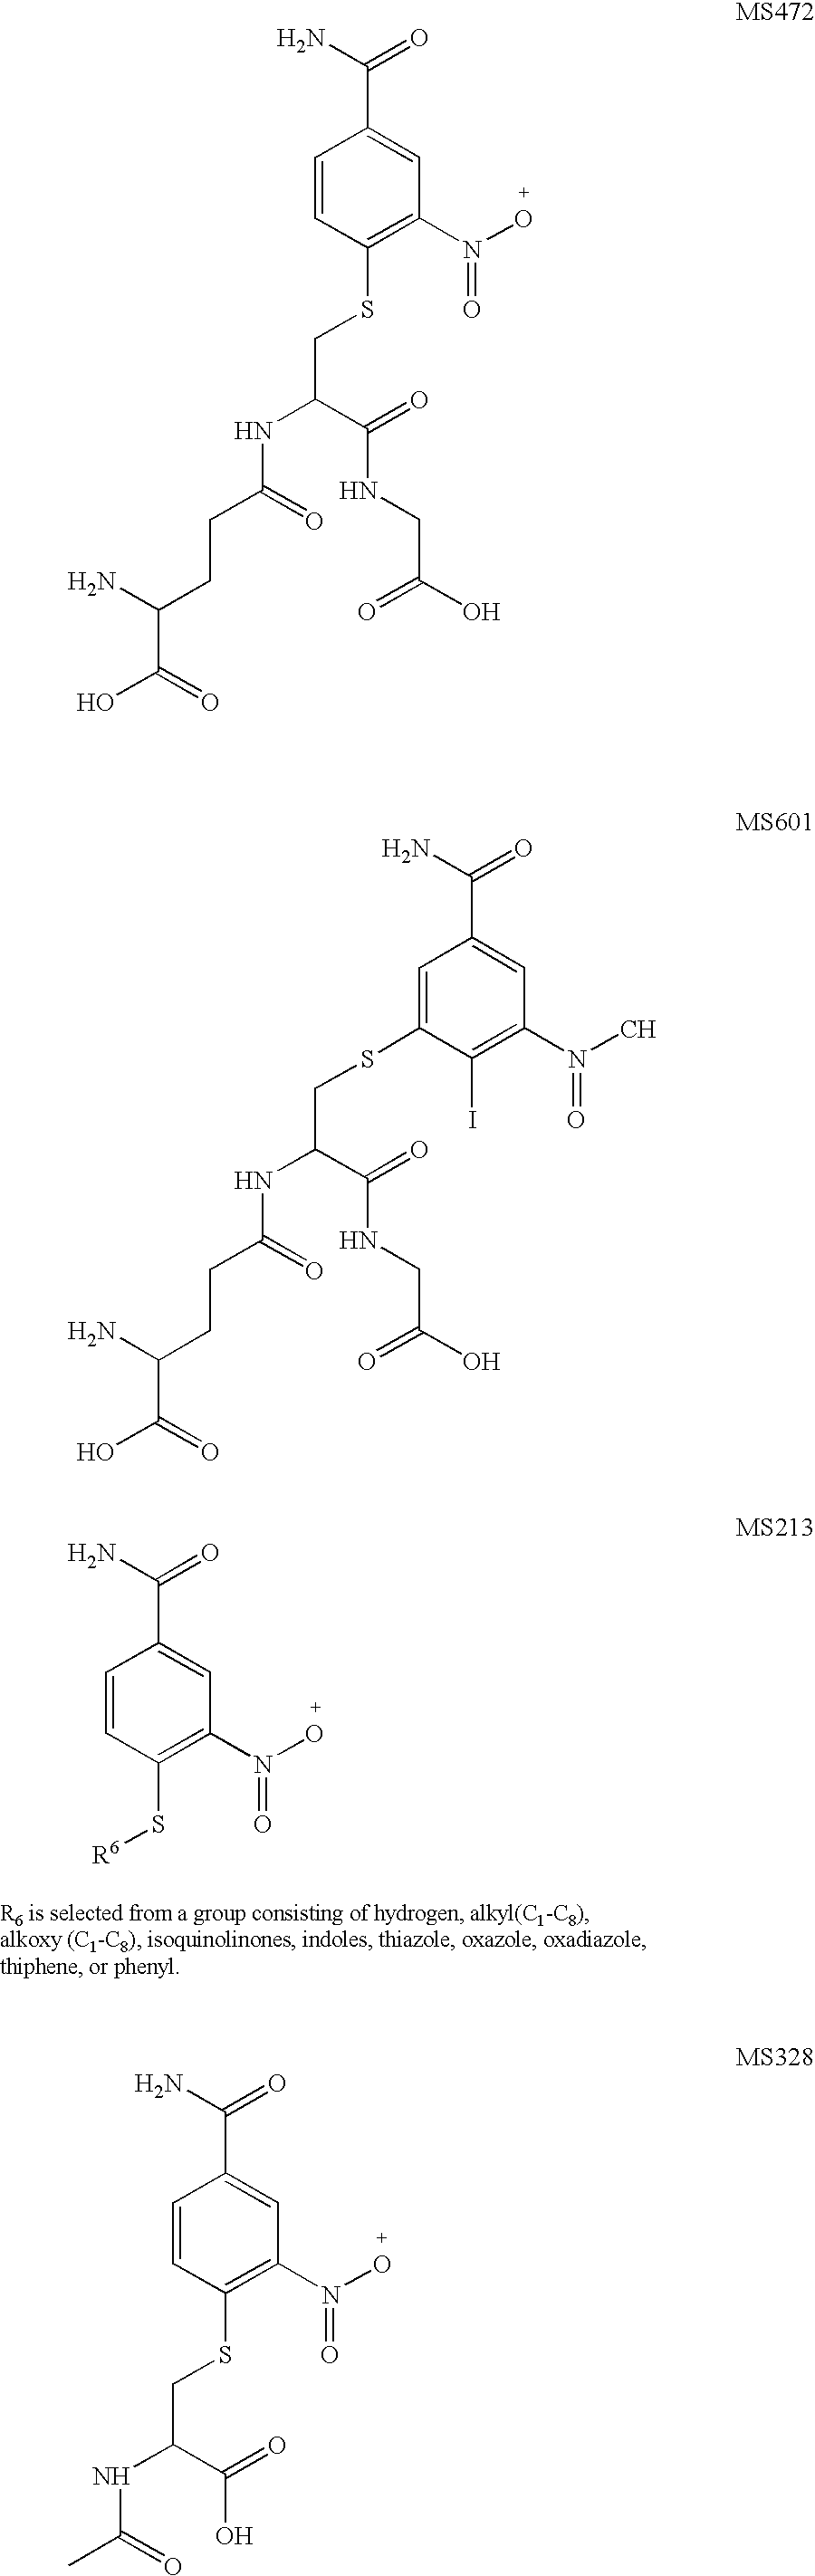 US7732491B2 - Treatment of breast cancer with a PARP inhibitor alone